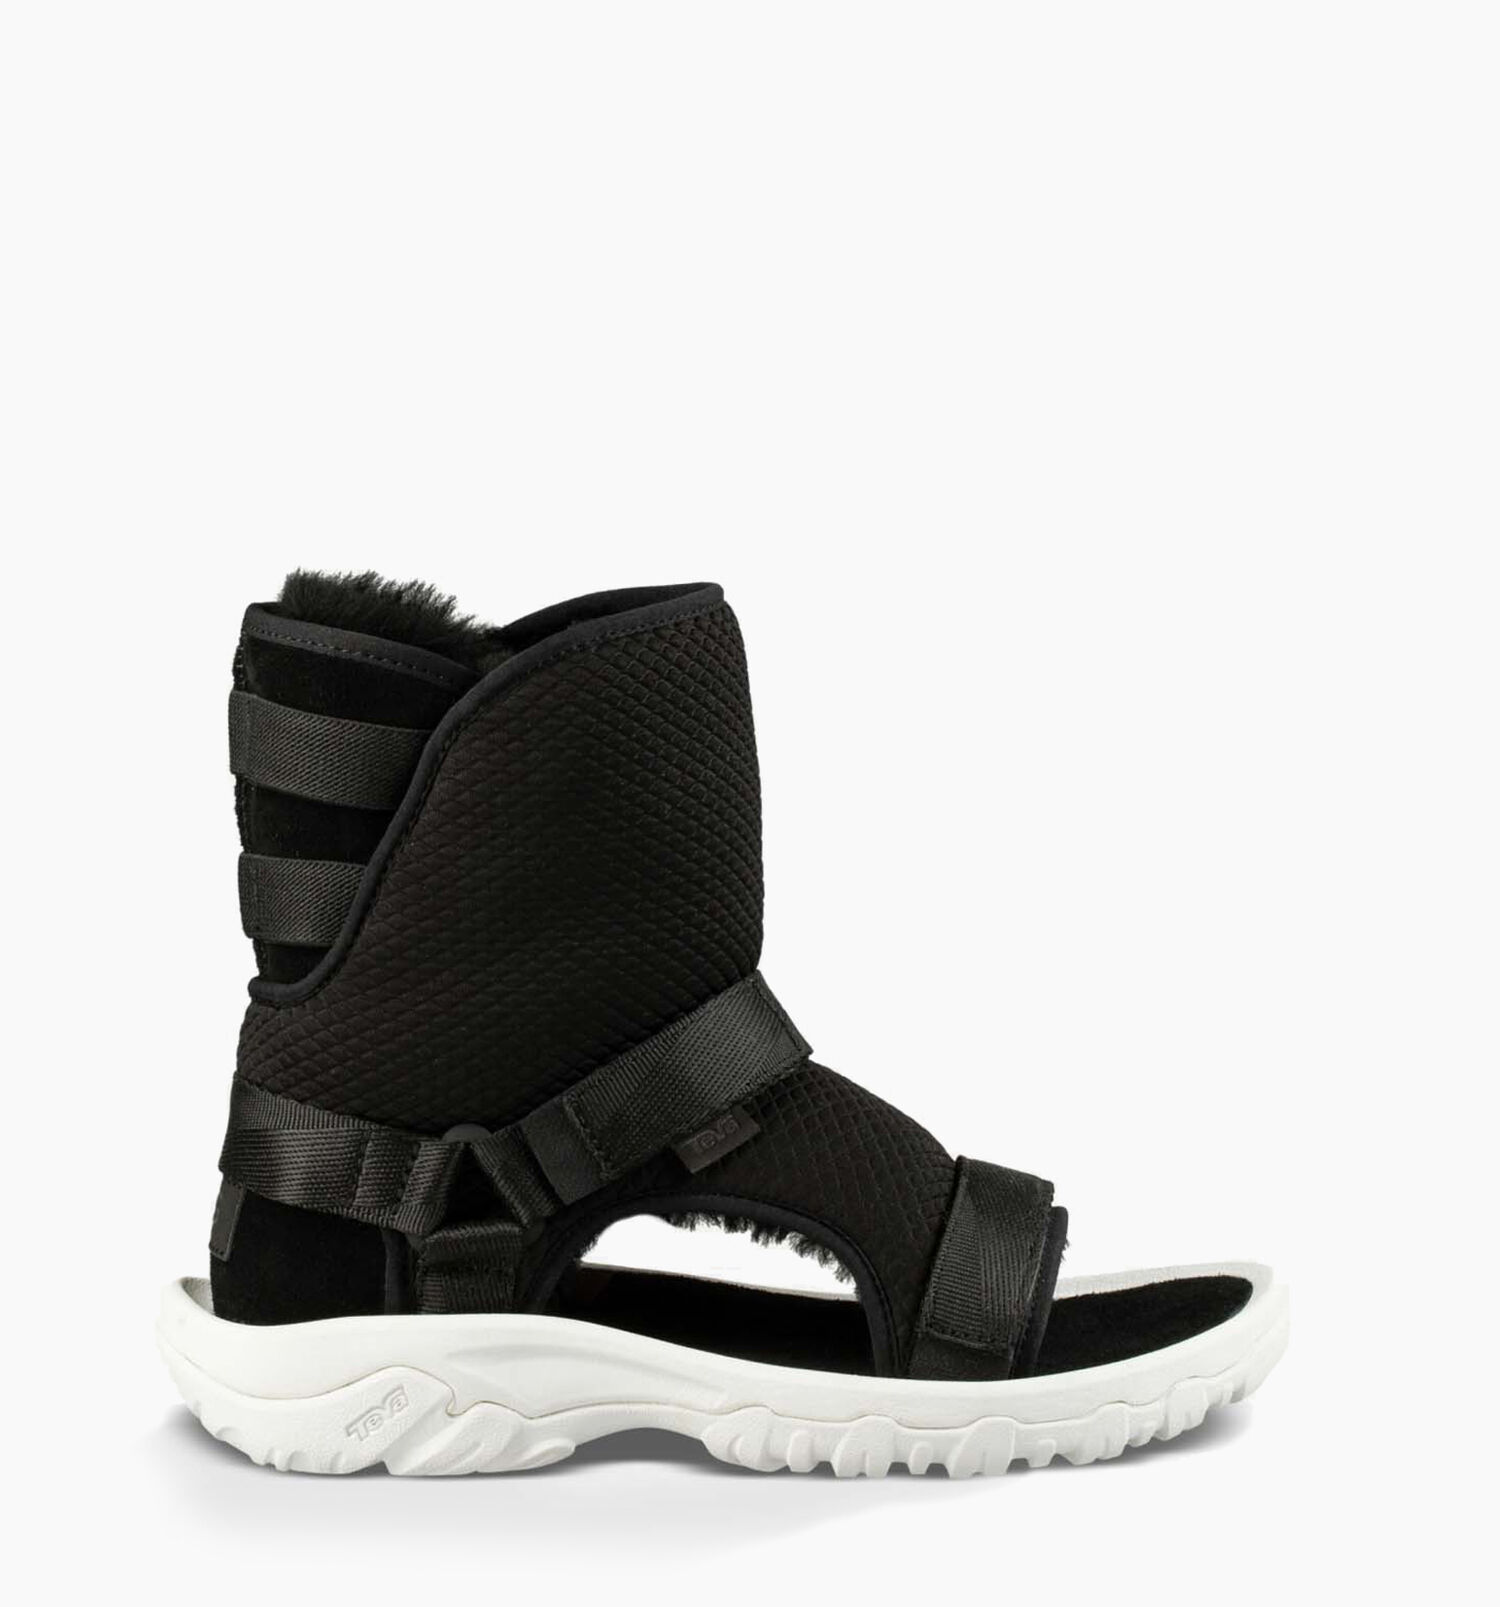 ca173c409ee Men's Share this product UGG/TEVA HYBRID